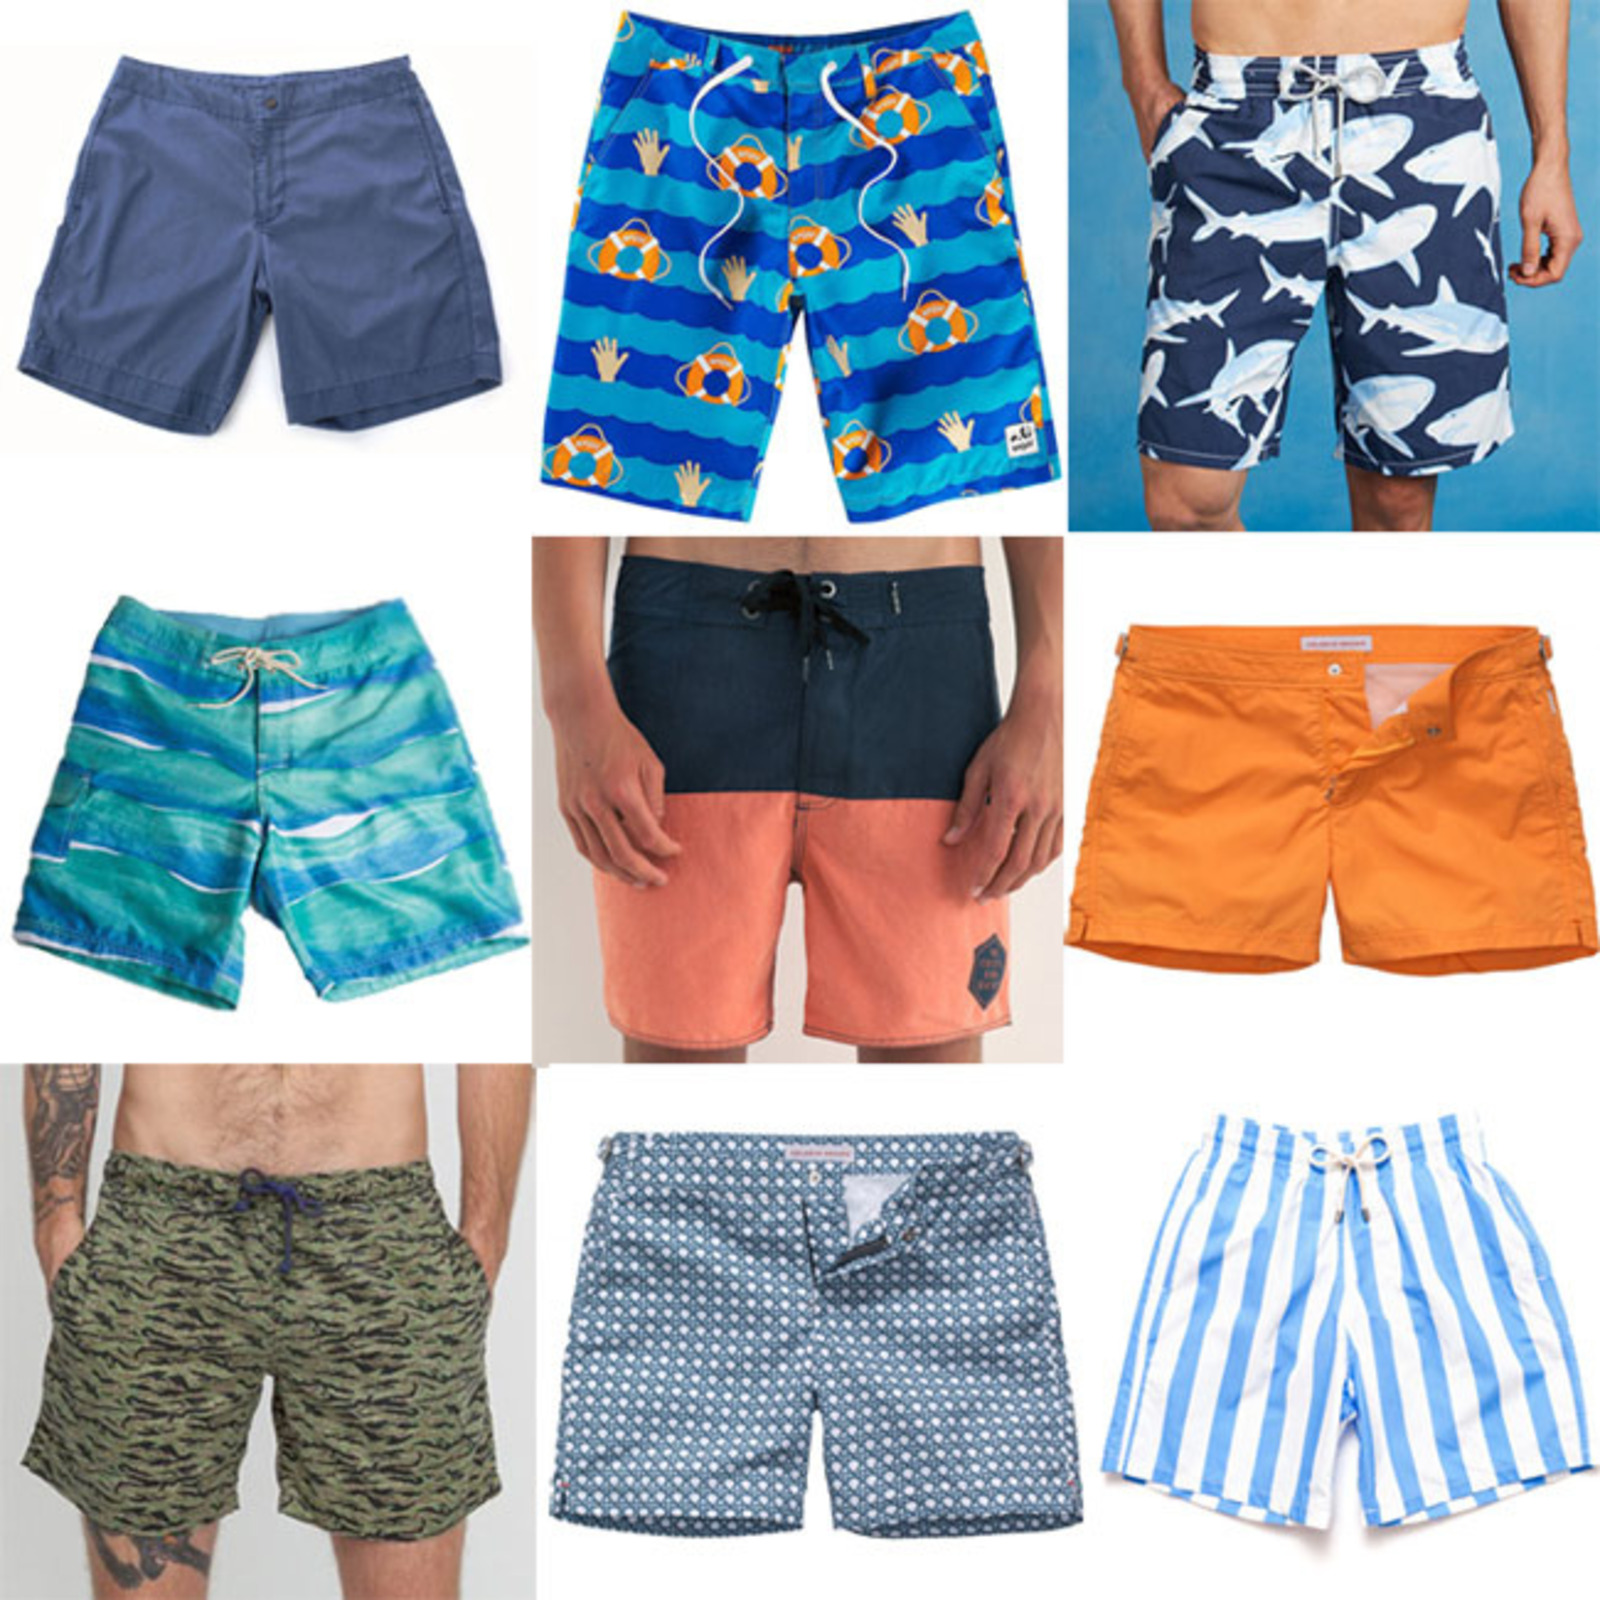 Here at onelainsex.ml, you will find the widest range of men's swimwear of all the specialized brands such as Cover Male, WildmanT, Marcuse and much more. The multitude of the swimwear at the site includes the following styles.